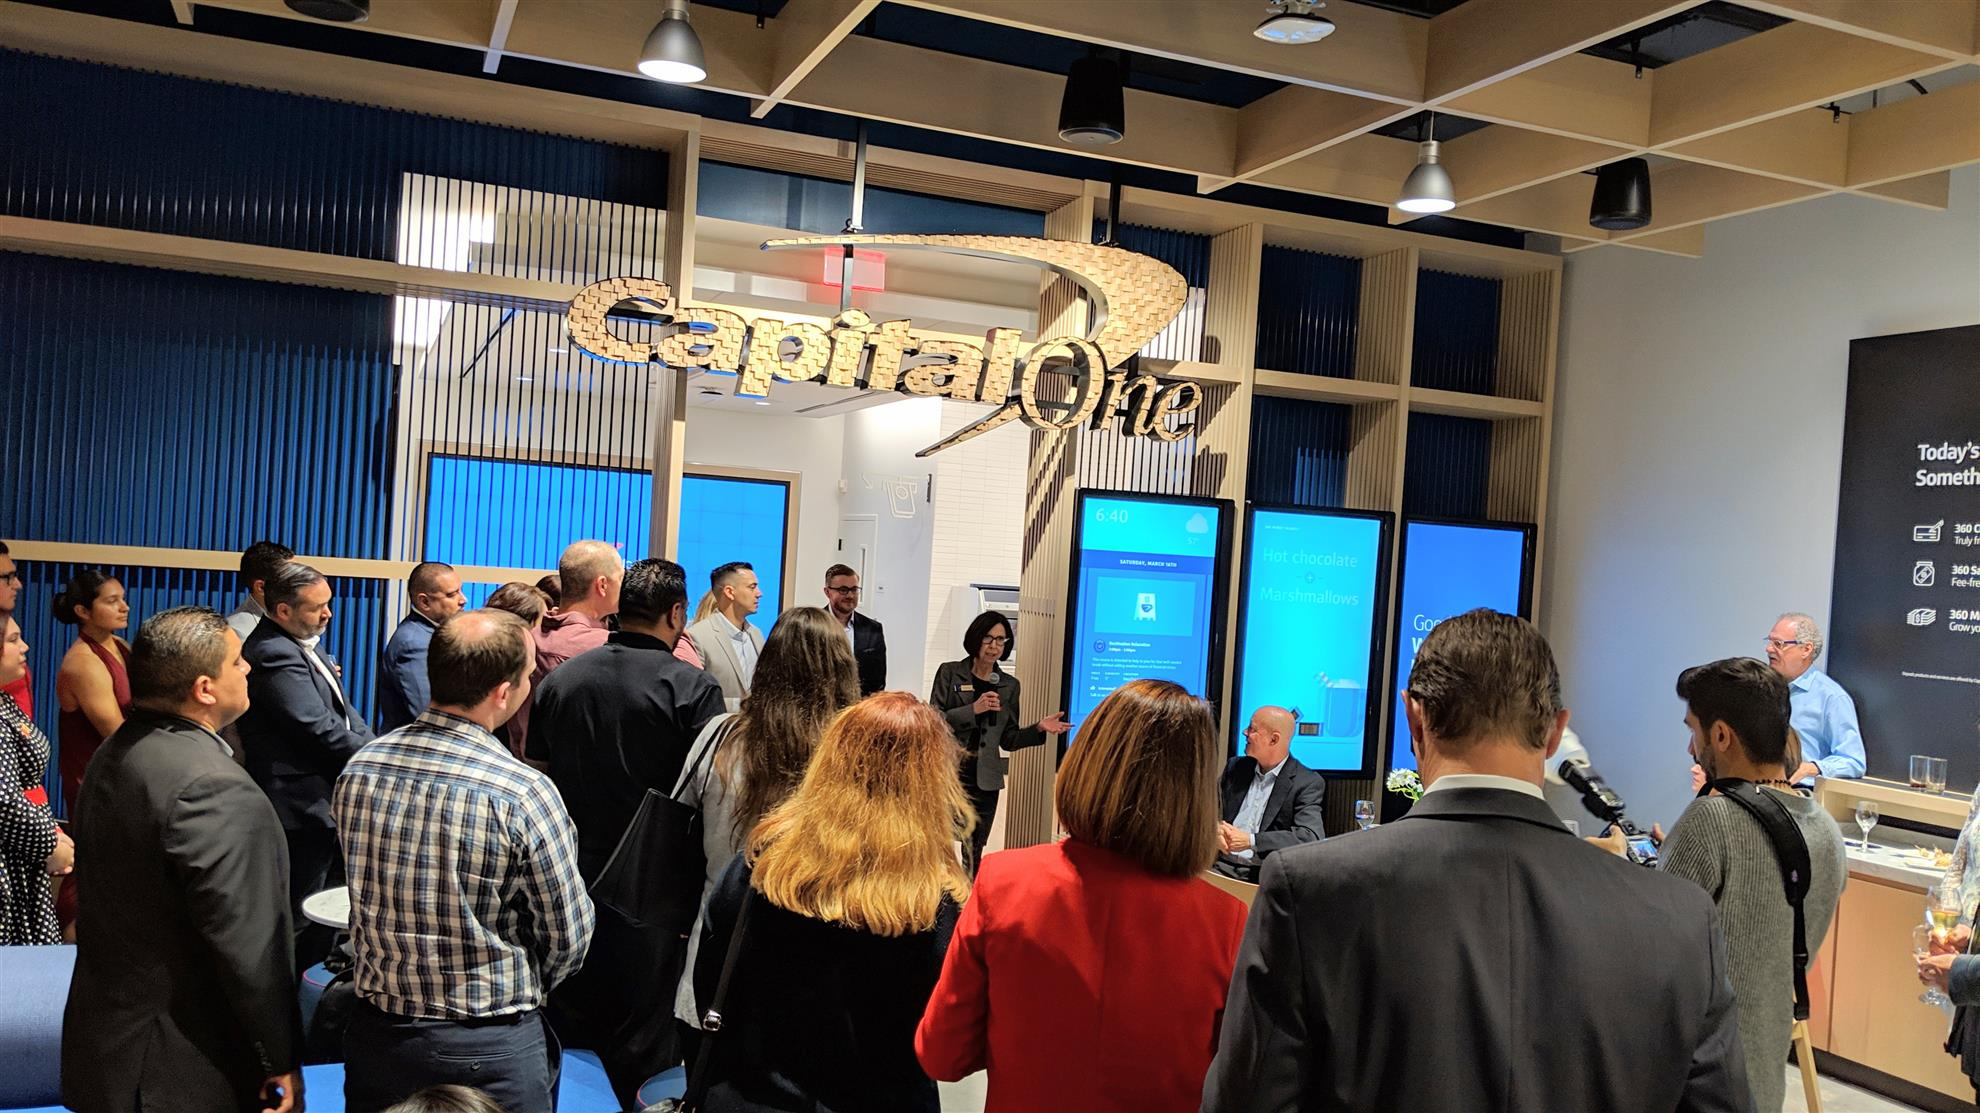 704cb8b4b5f7d4 ... the VIP ribbon-cutting ceremony at the newly launched Capital One Cafe  in the re-modeled Westfield mall in UTC. Our club Rotarian Patricia Case